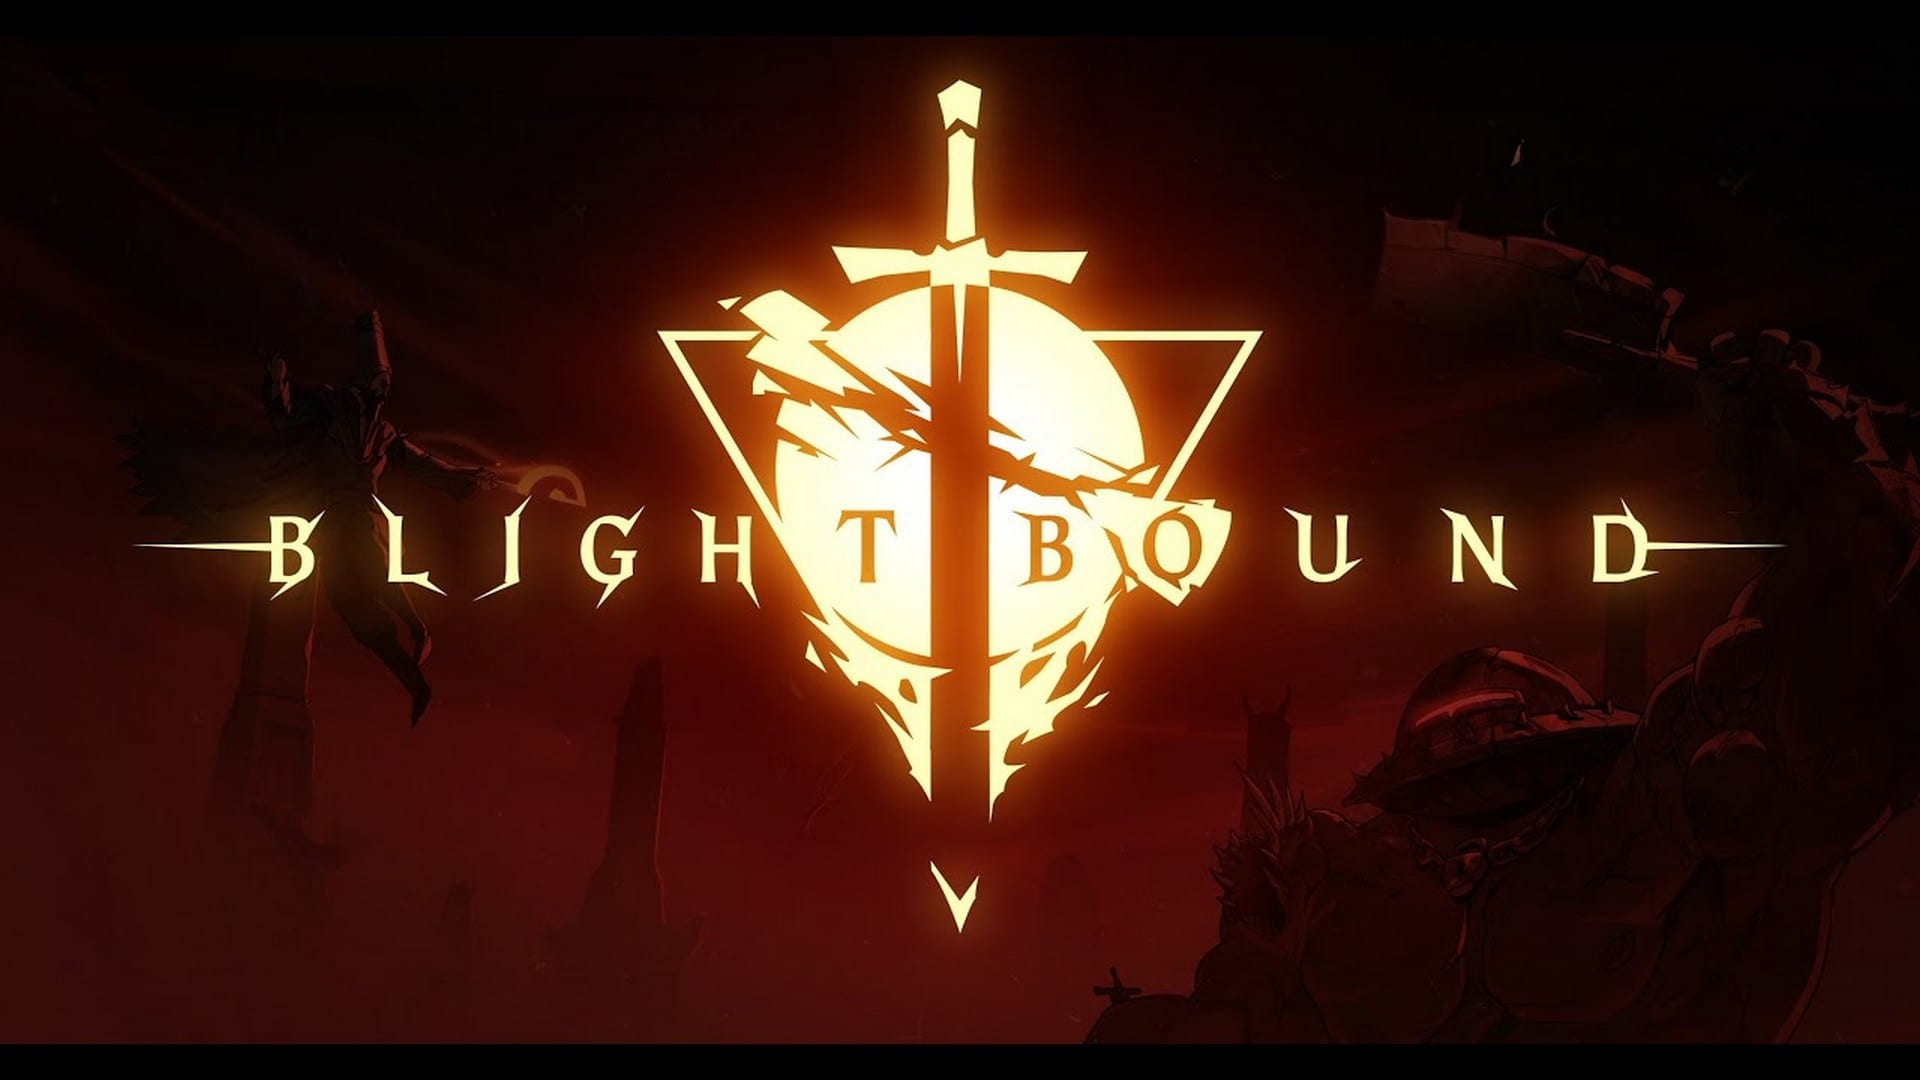 Multiplayer Dungeon Crawler Blightbound Charges Into Early Access On July 29th